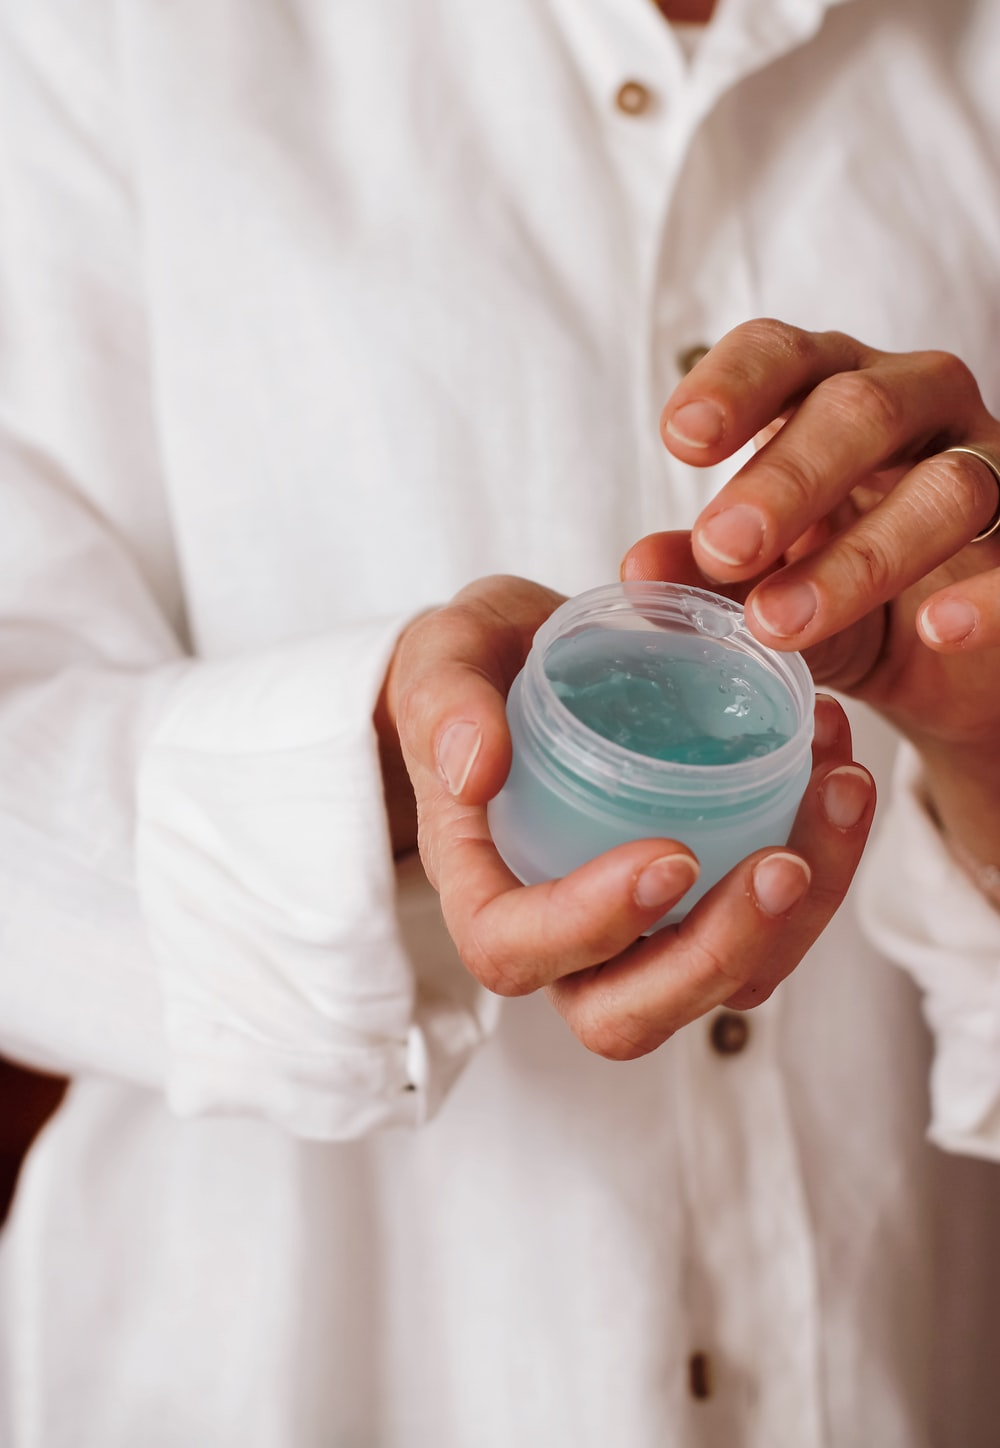 person holding blue plastic container